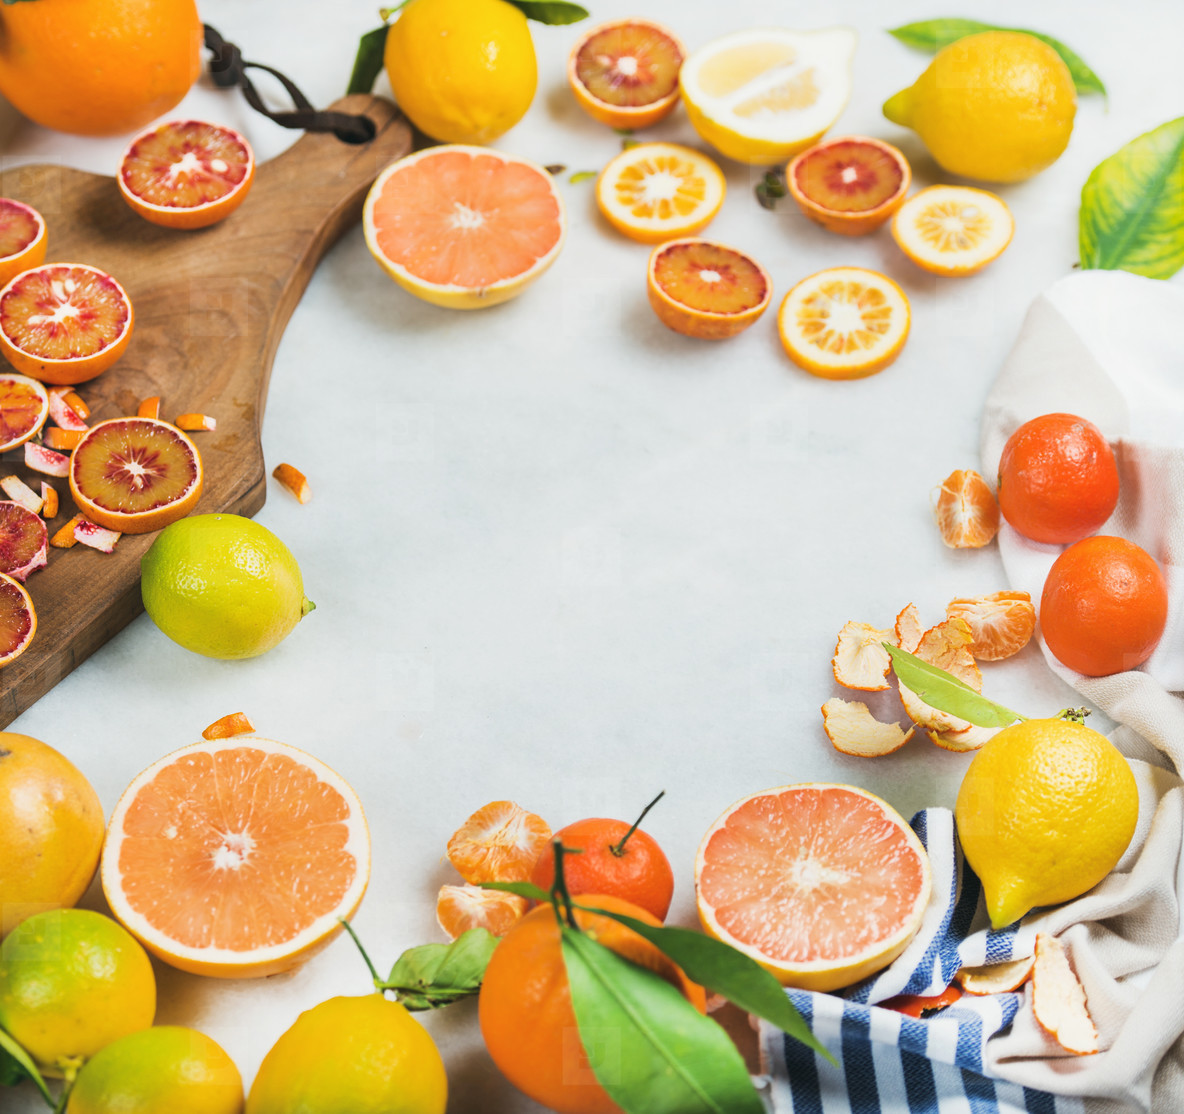 Citrus fruits slices on wooden board over grey marble background